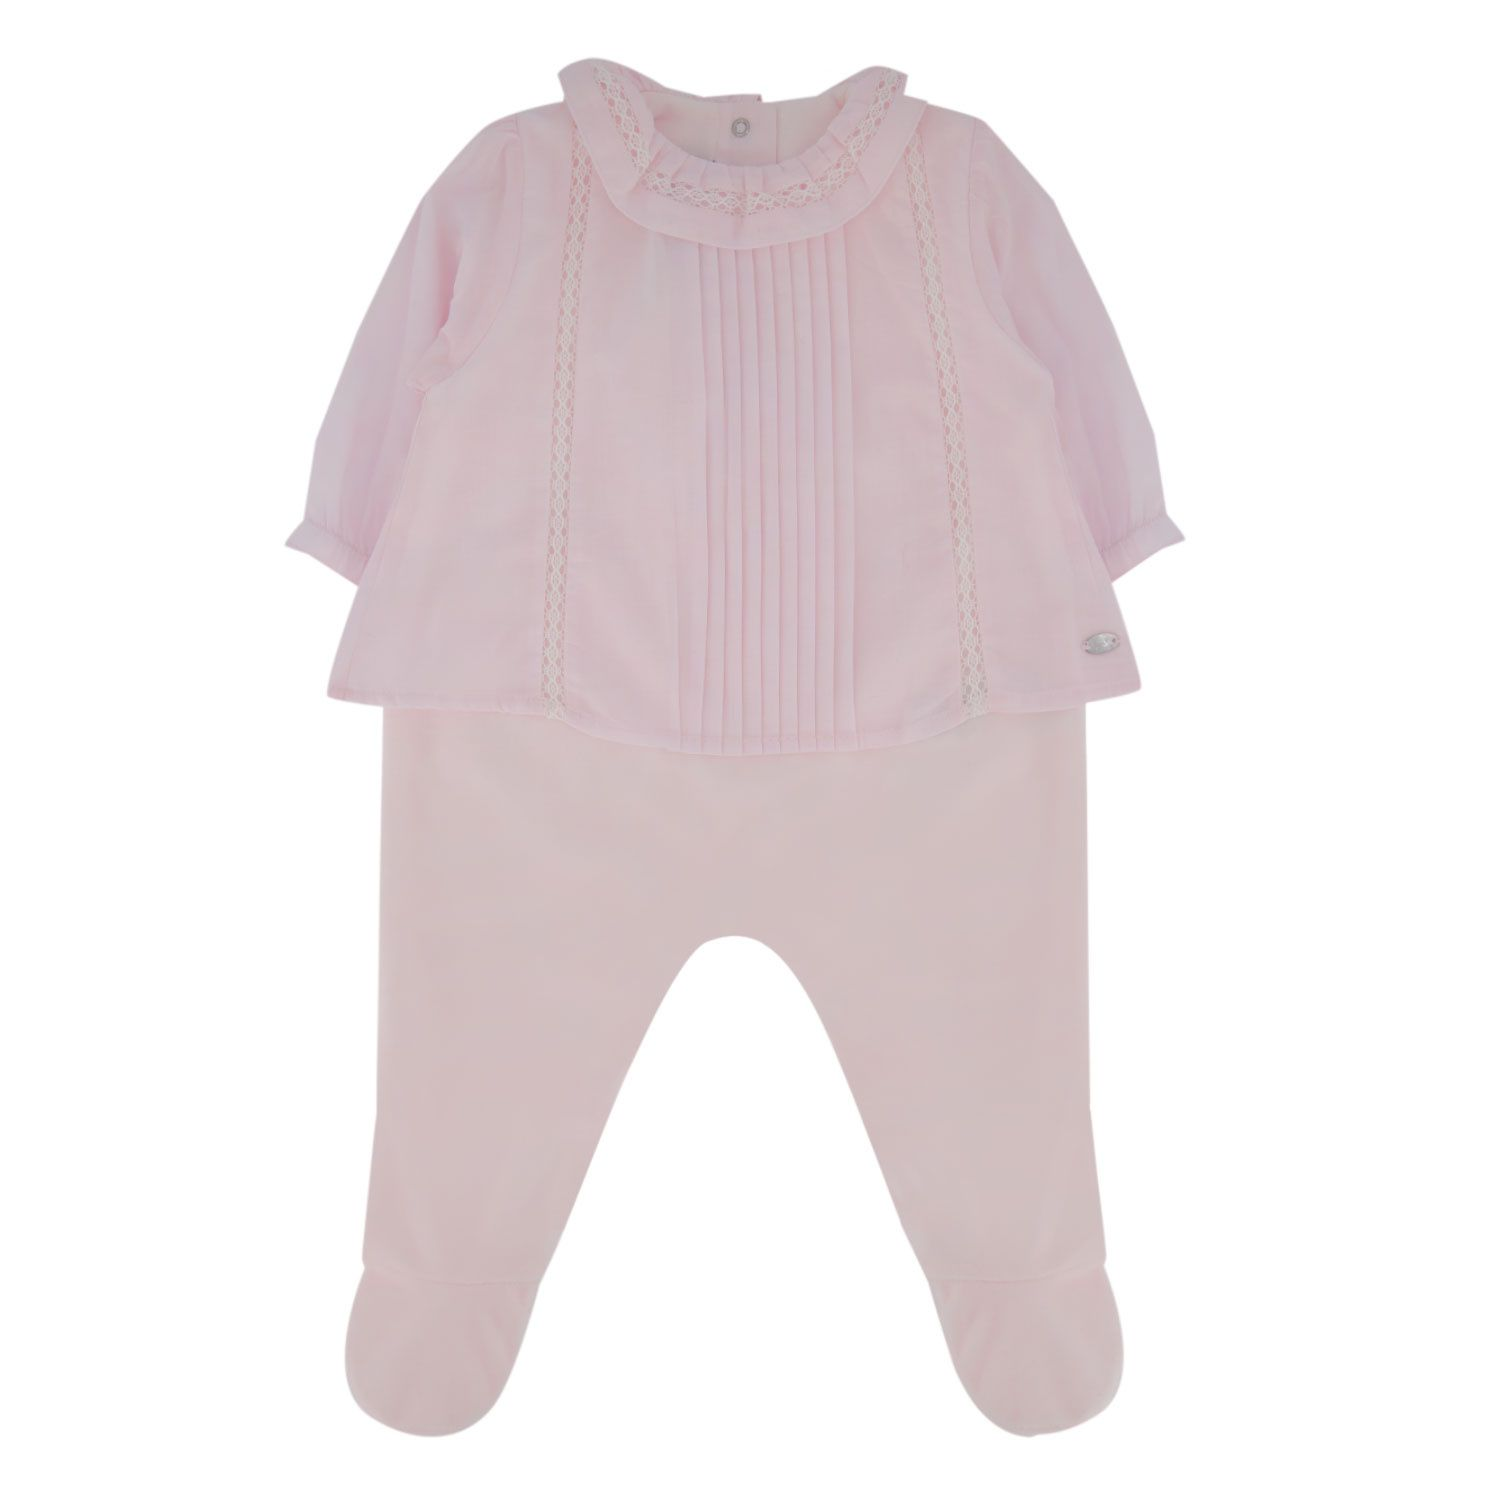 Picture of Tartine et Chocolat TR54101 baby playsuit light pink